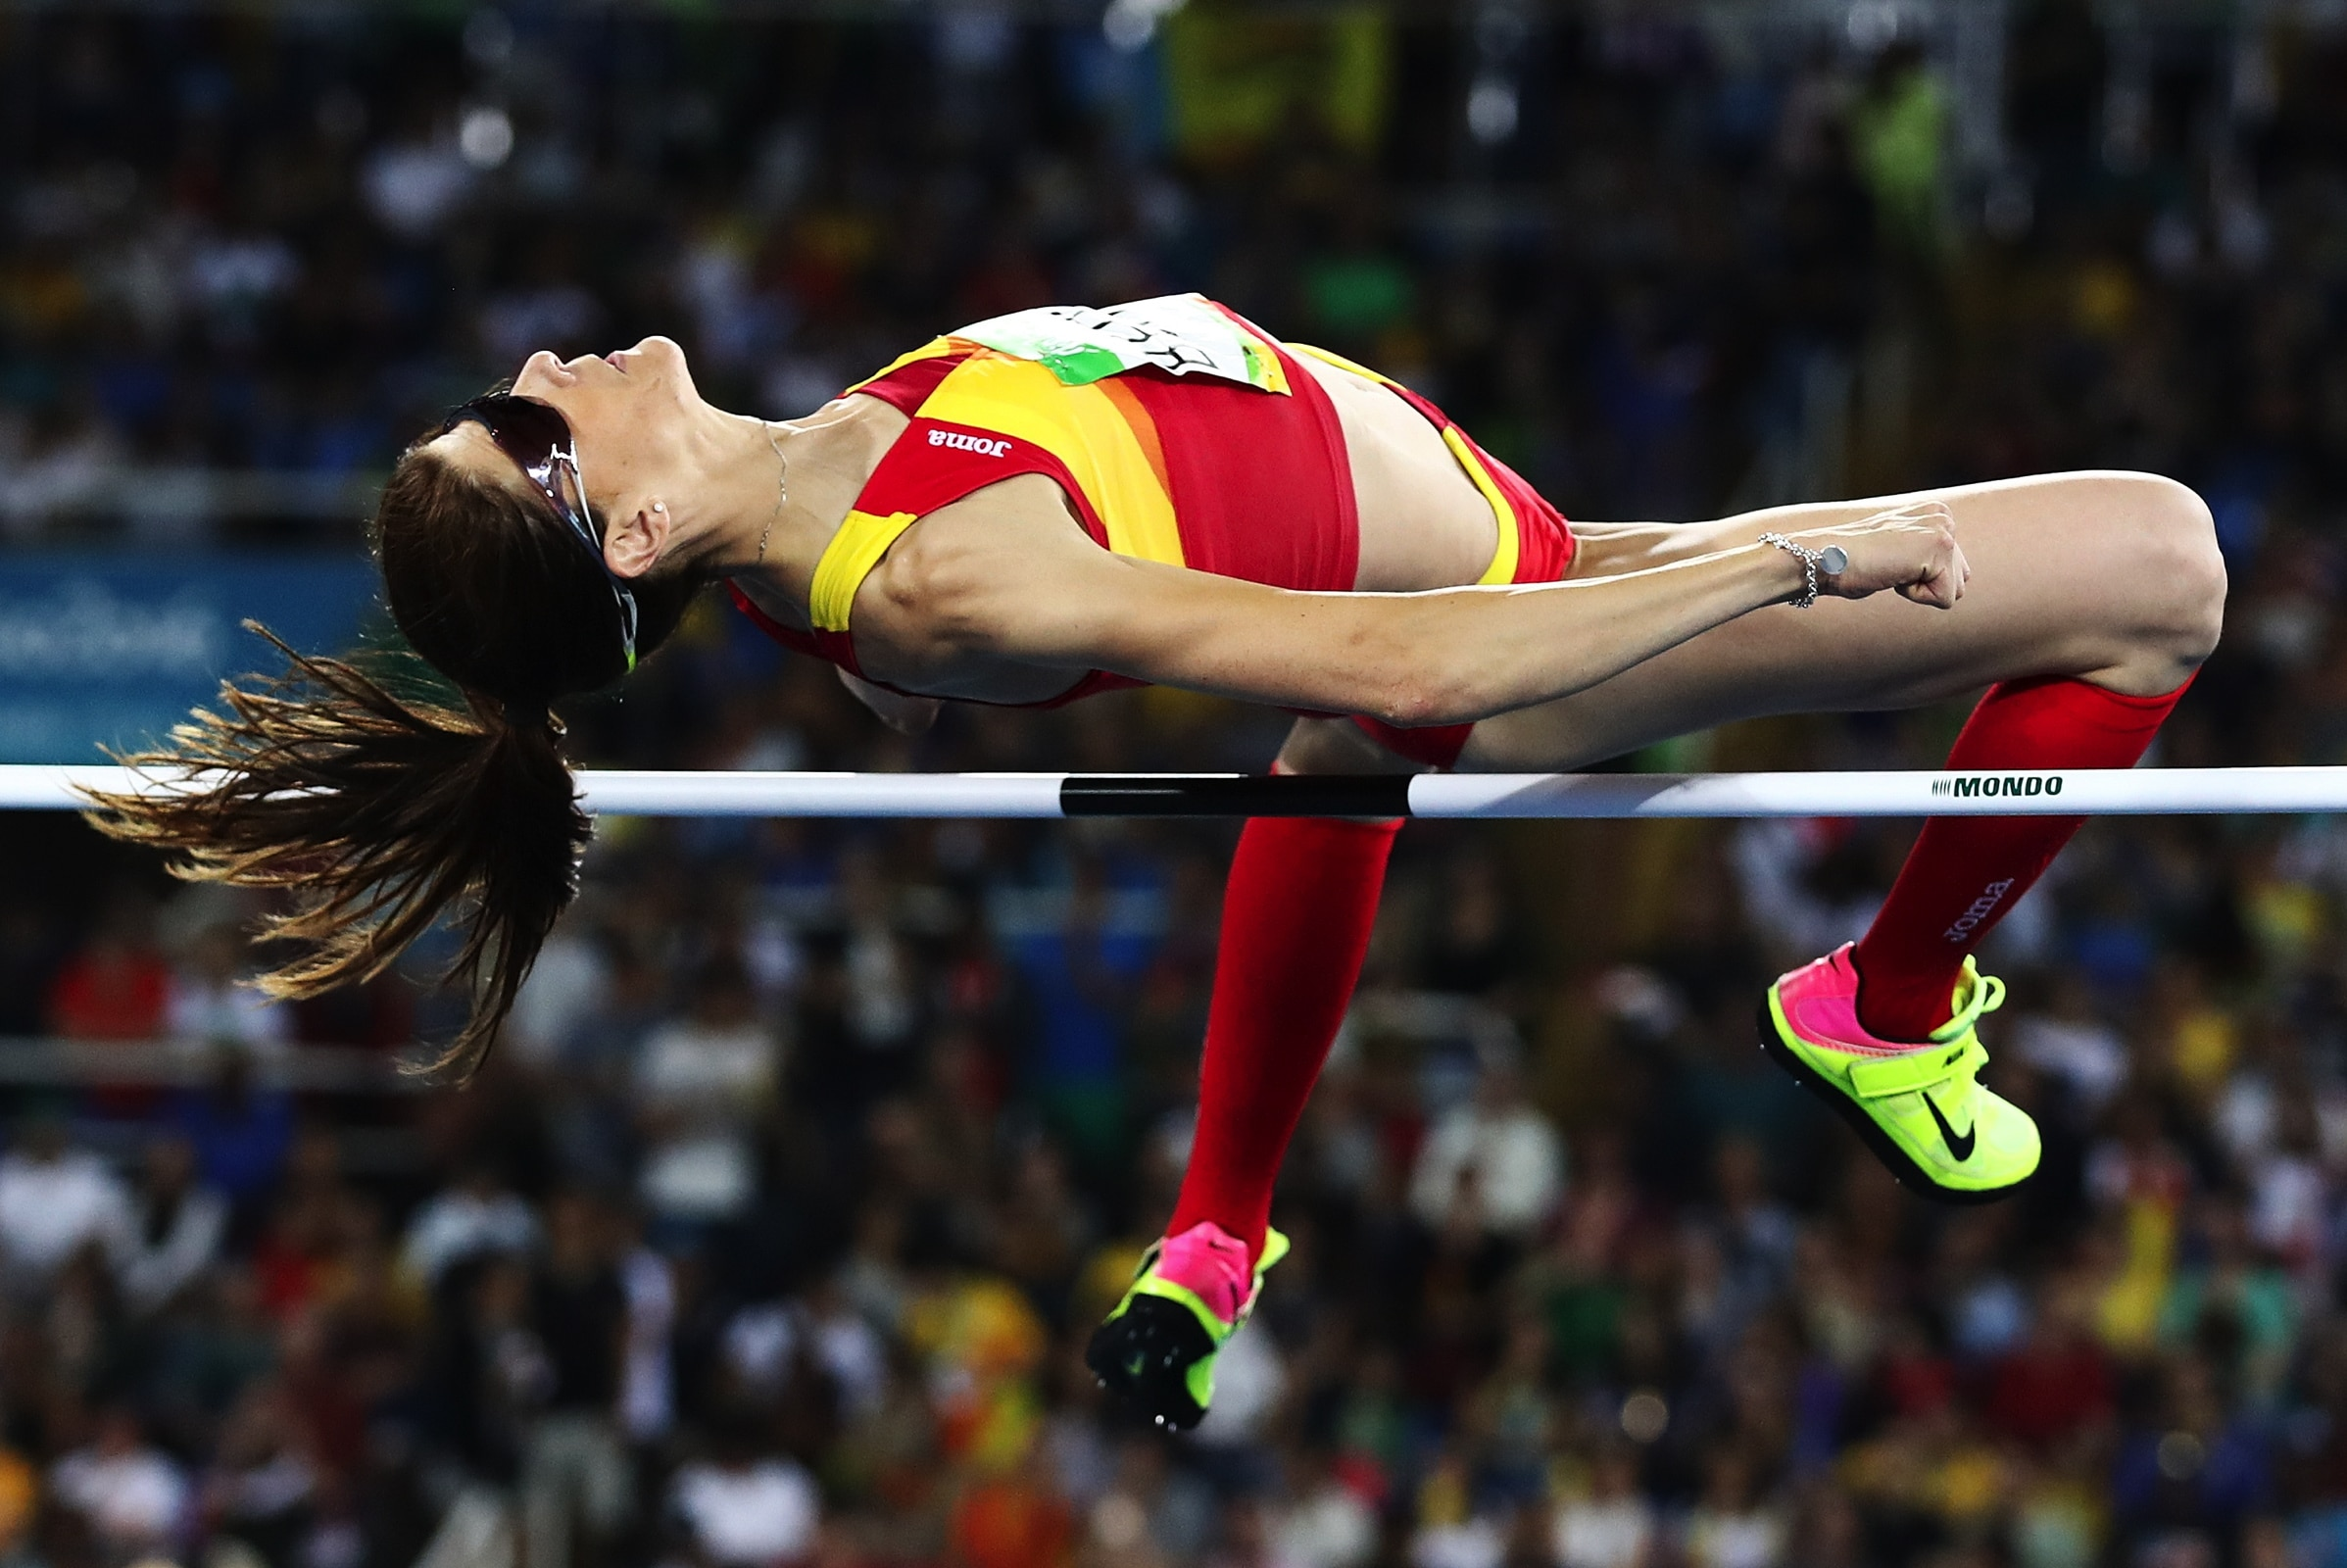 Athletics - Women's High Jump